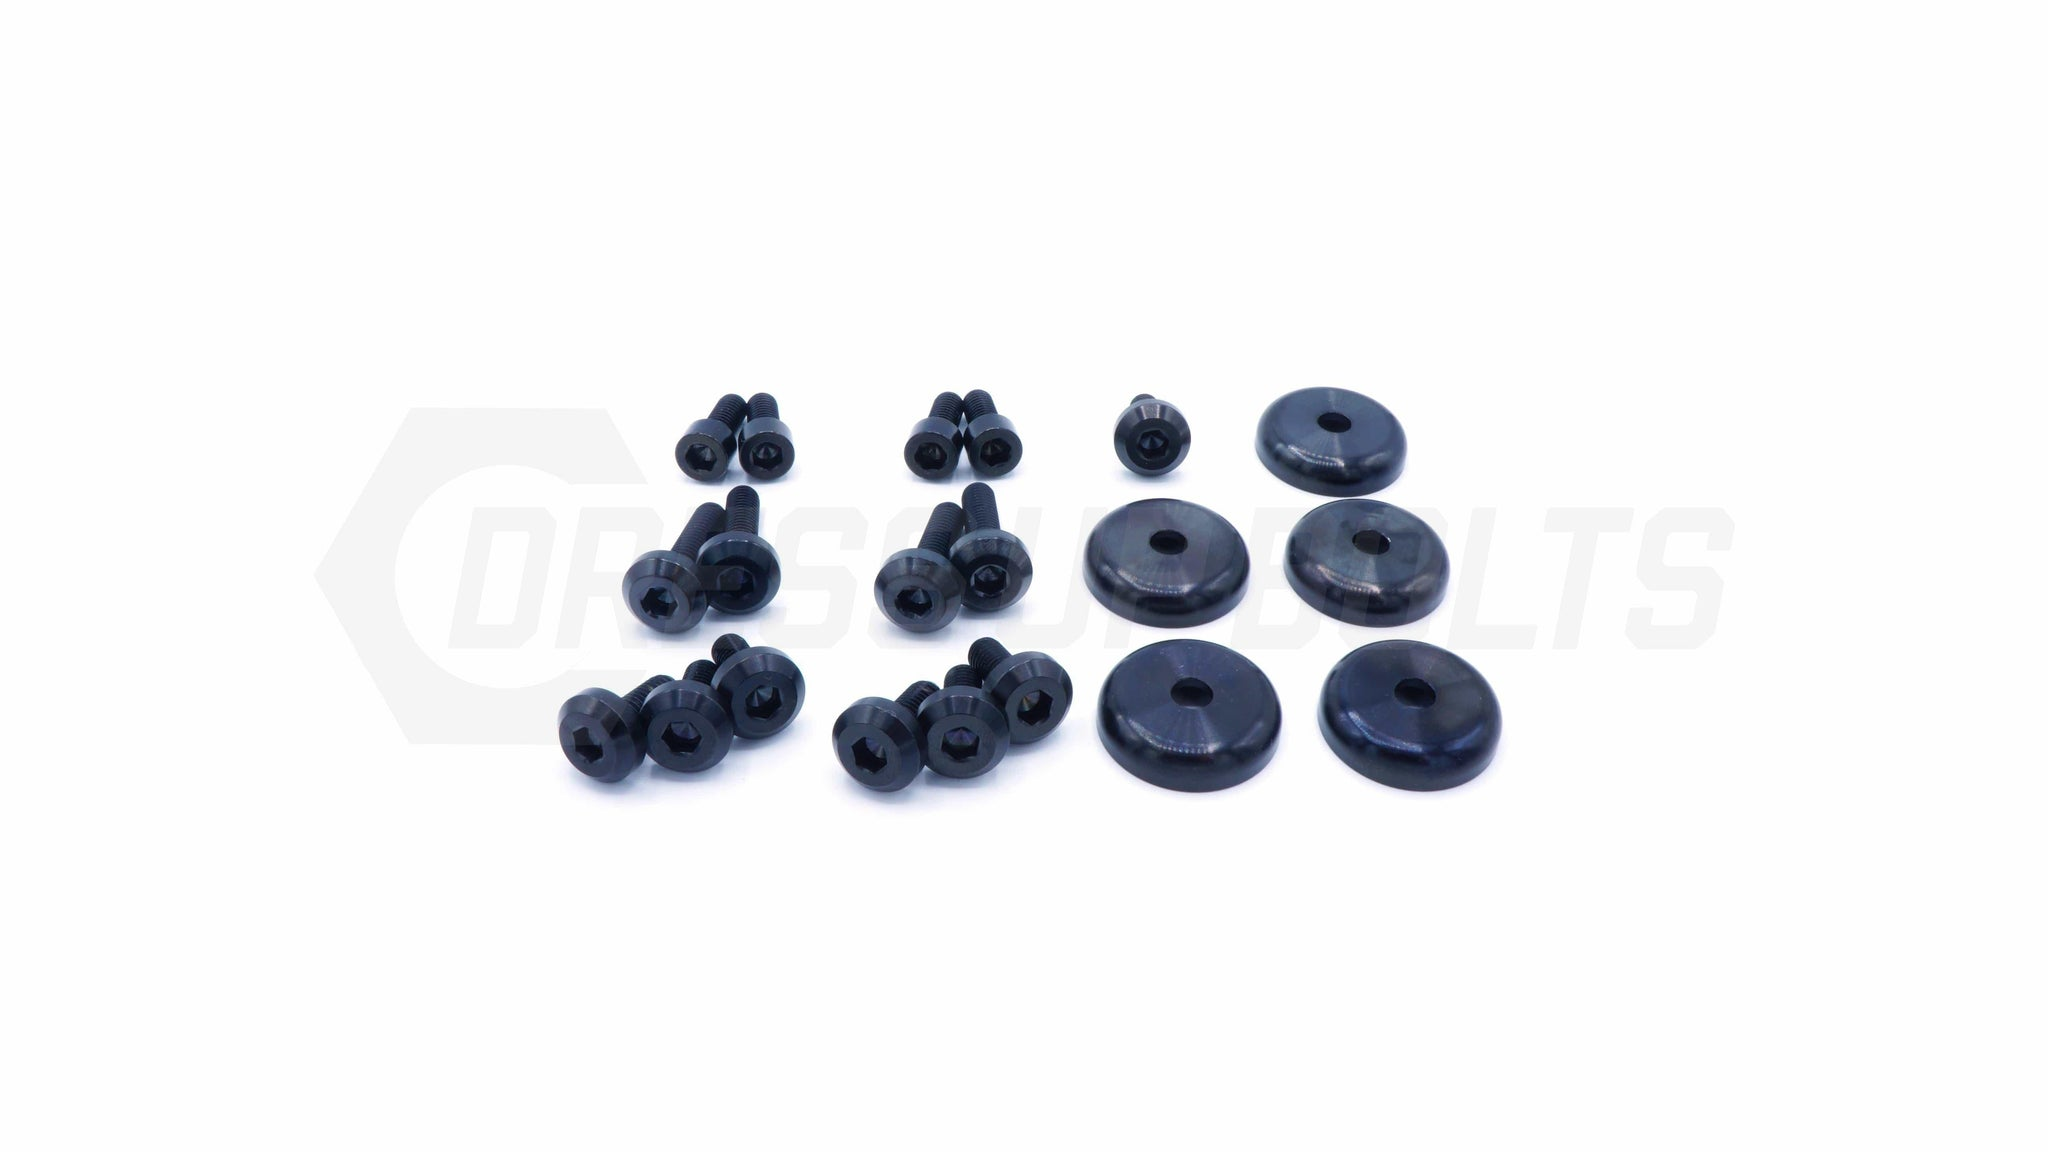 Dress Up Bolts Stage 2 Titanium Hardware Engine Kit - F20C | F22C1 Engine - DressUpBolts.com